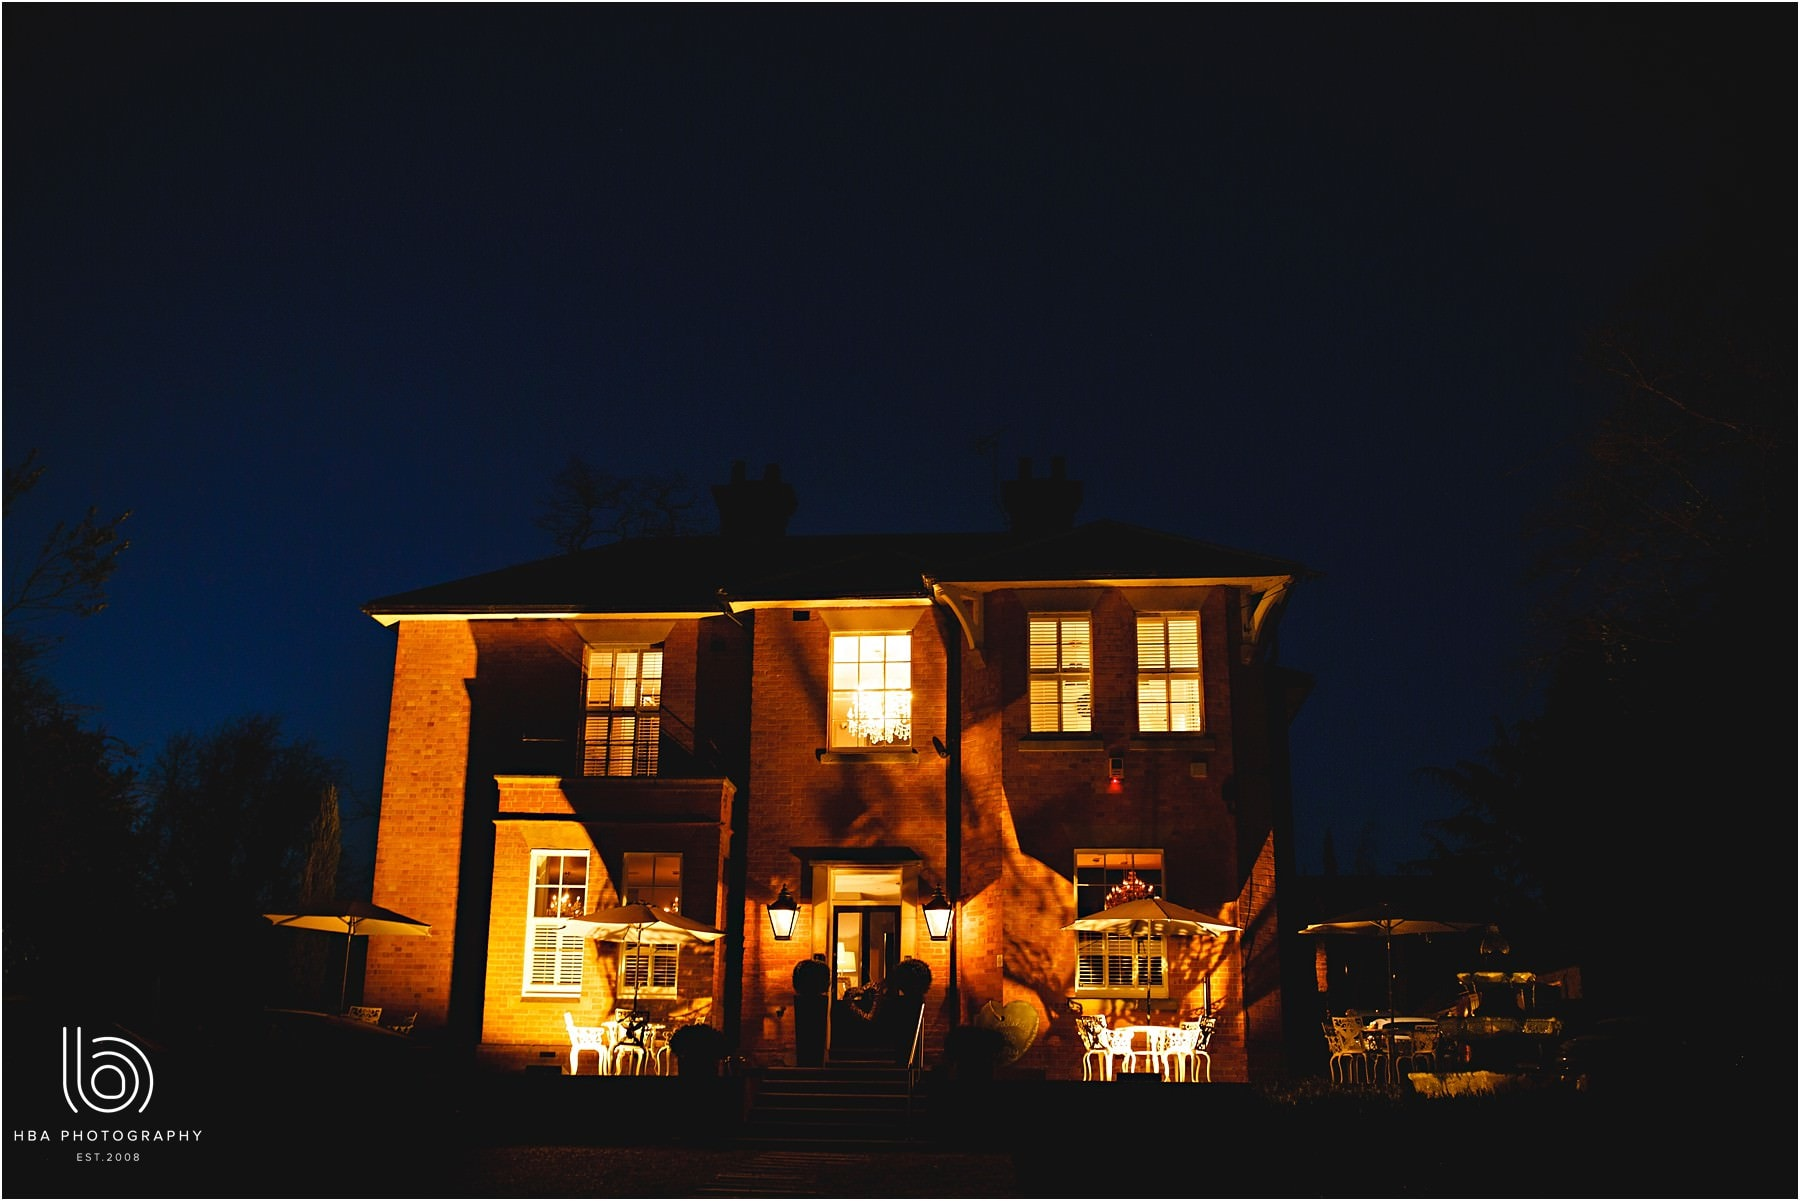 the old vicarage hotel at night